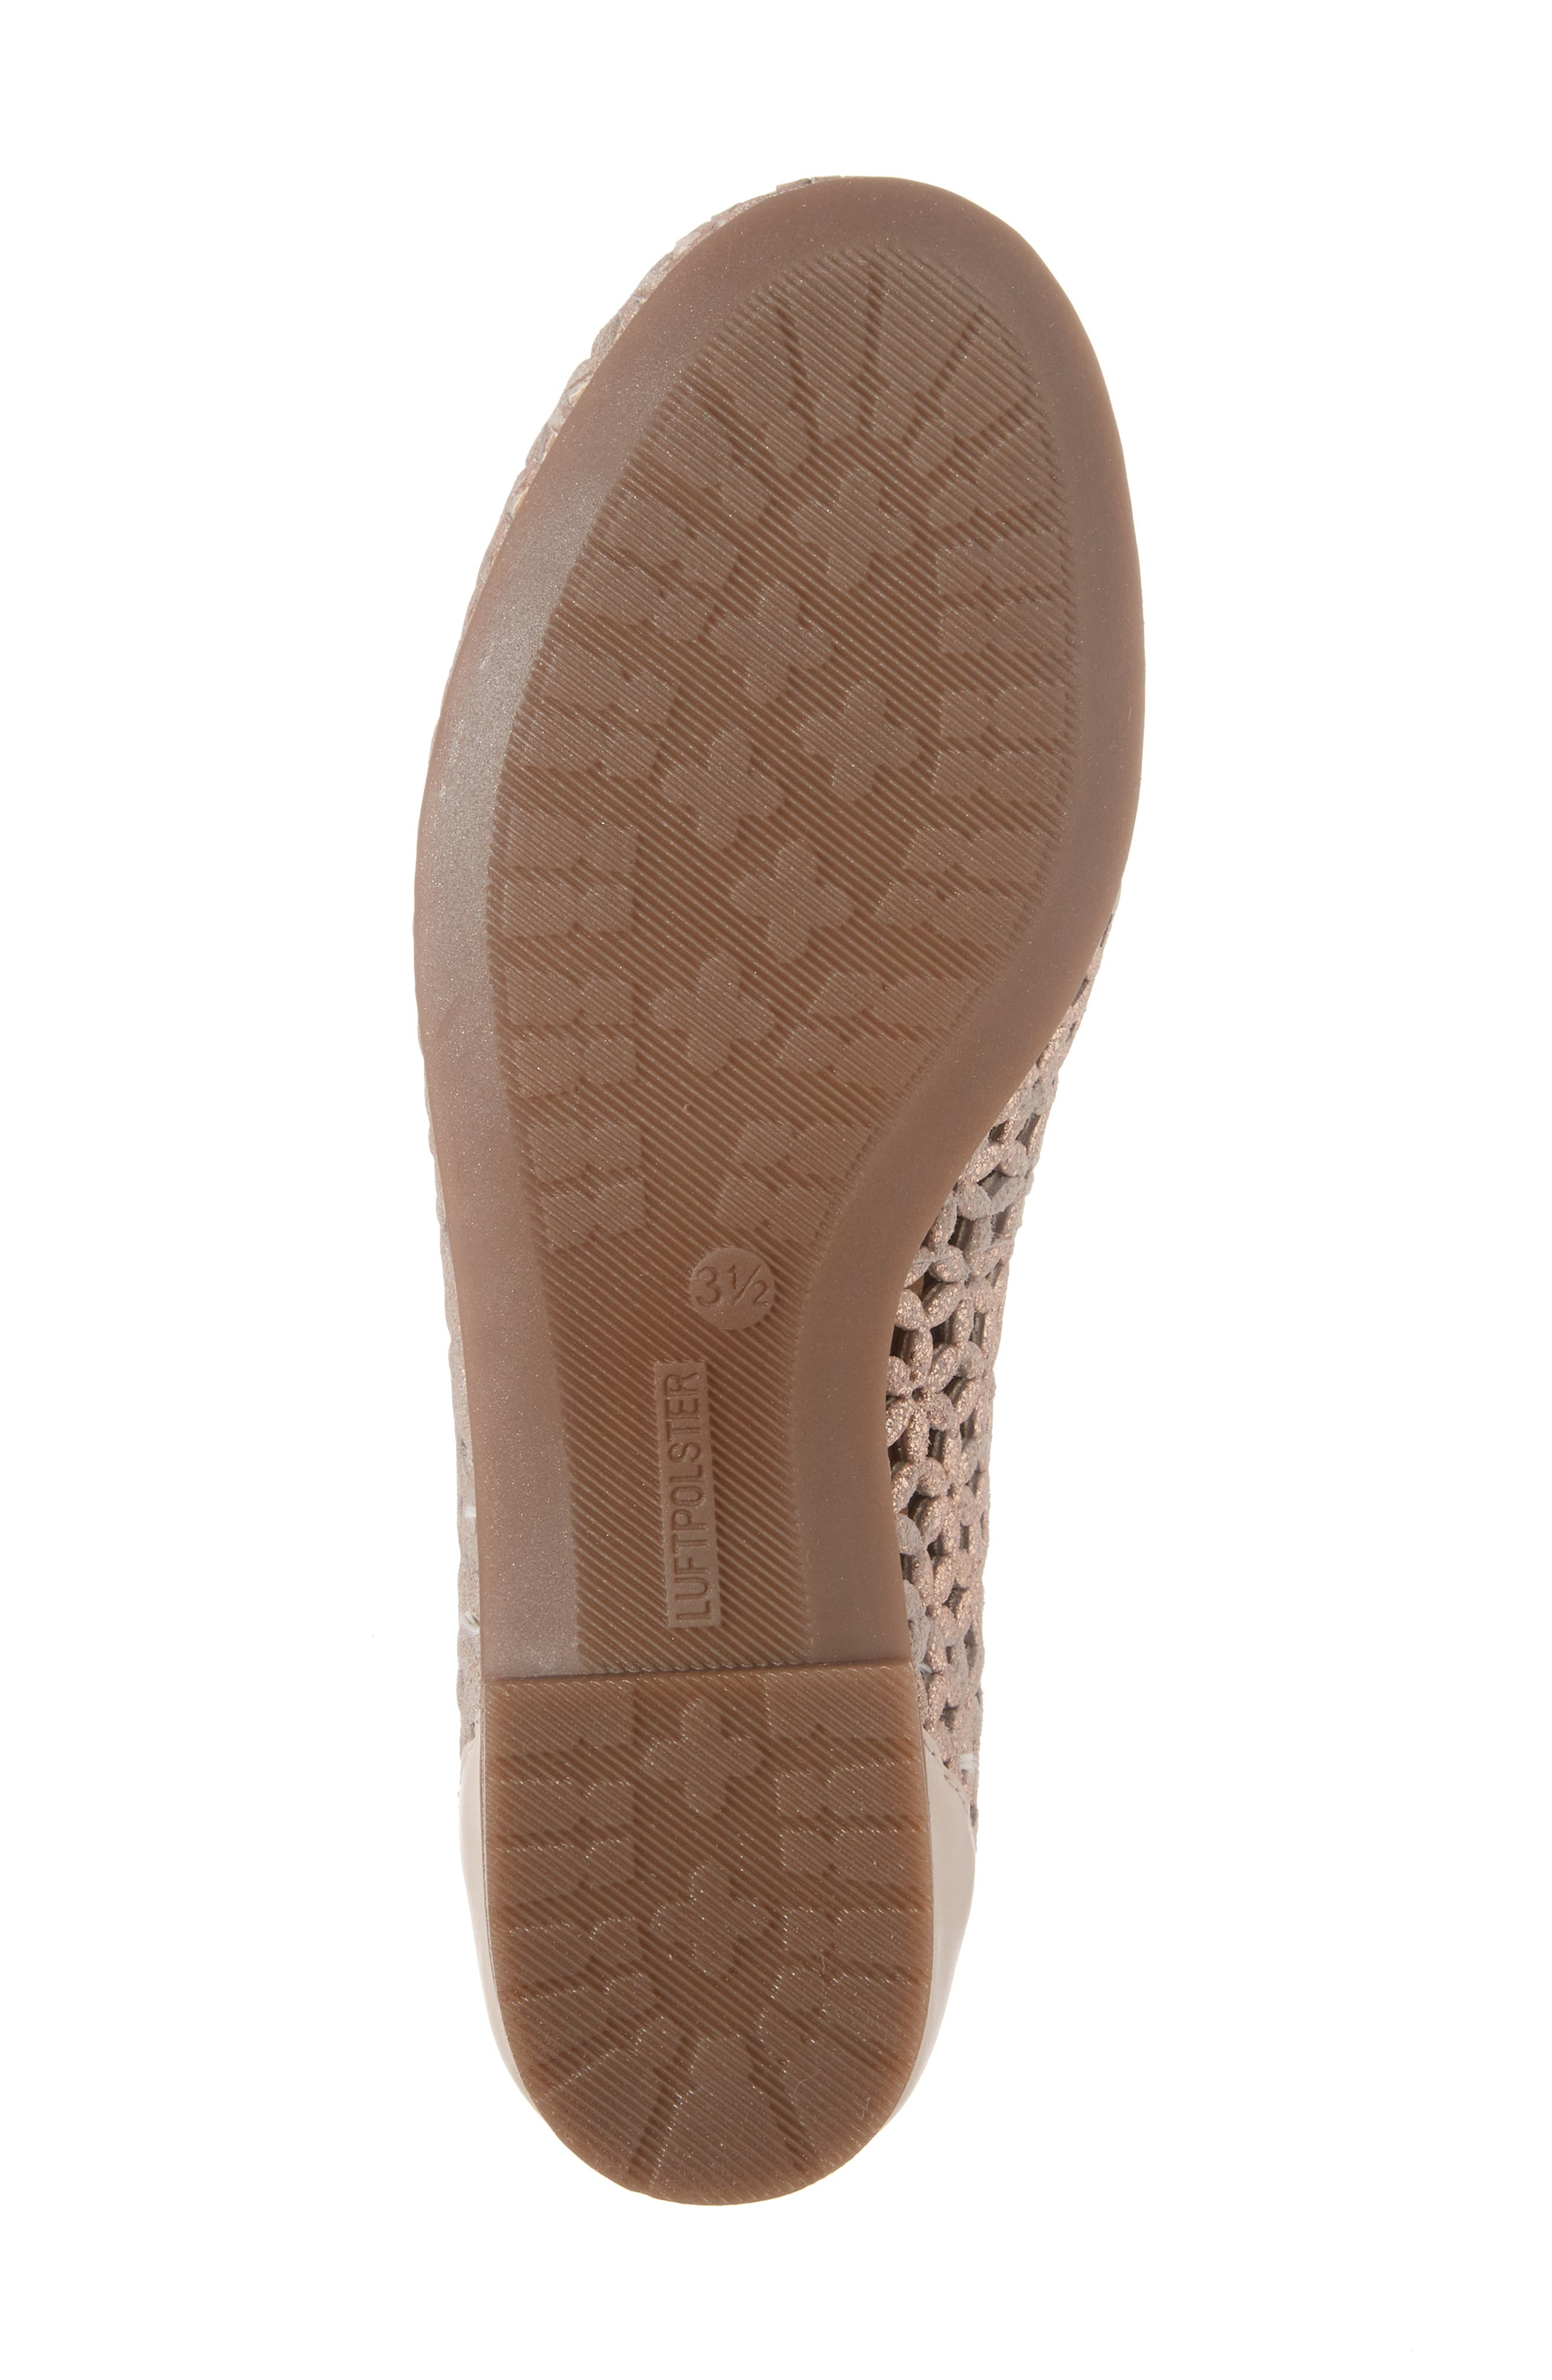 Stephanie Perforated Ballet Flat,                             Alternate thumbnail 6, color,                             Rose Gold Leather